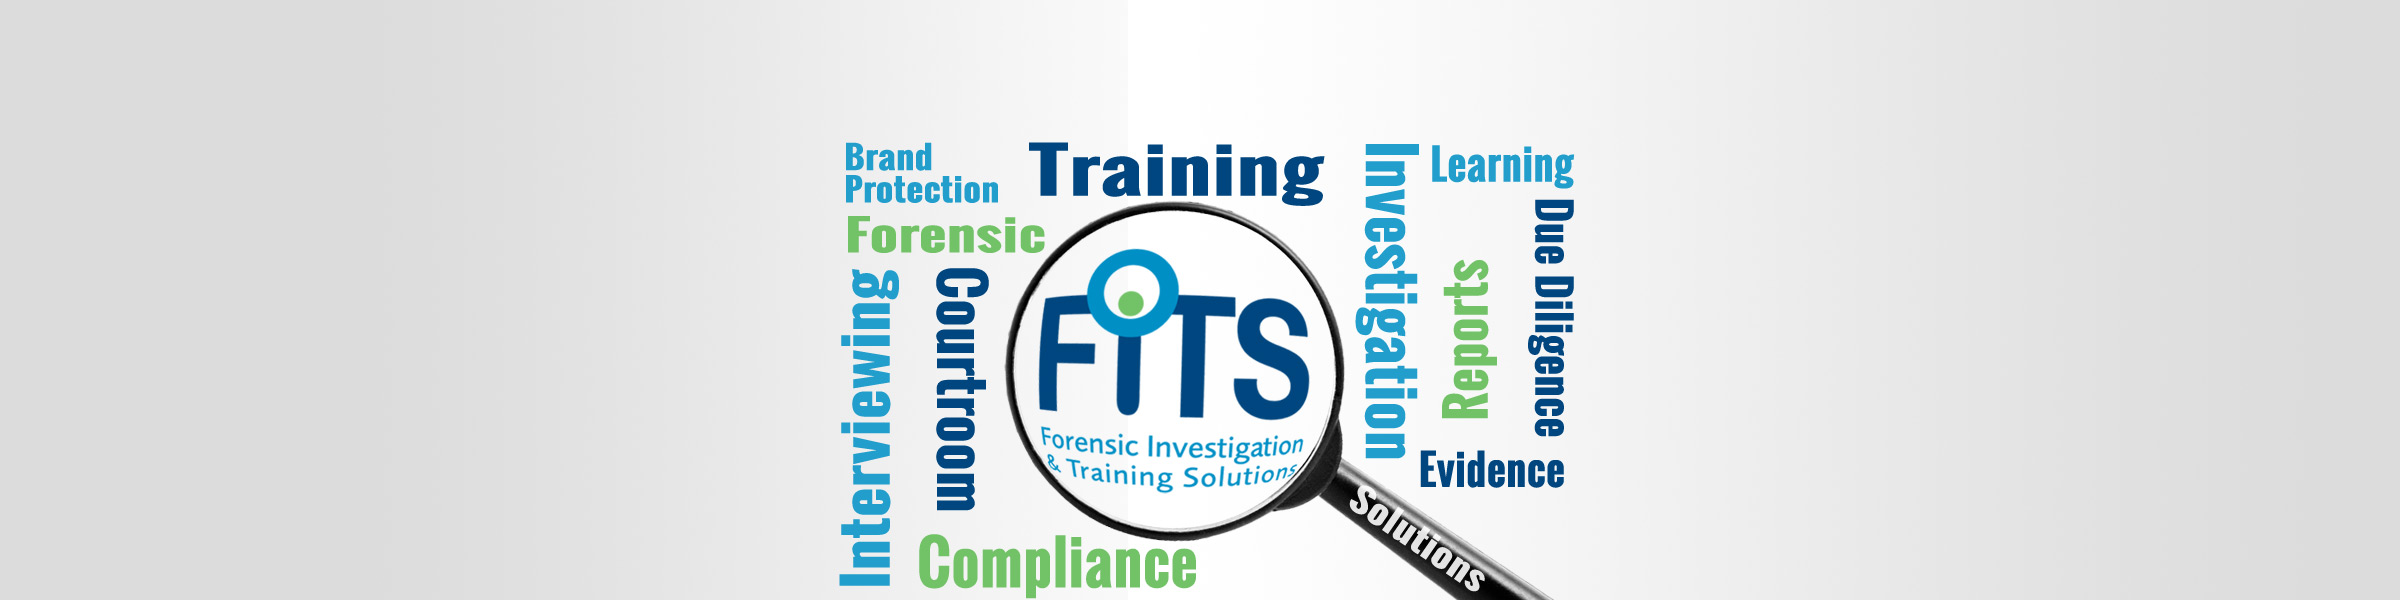 The Price of Poor Investigations vs the Cost of Effective Training